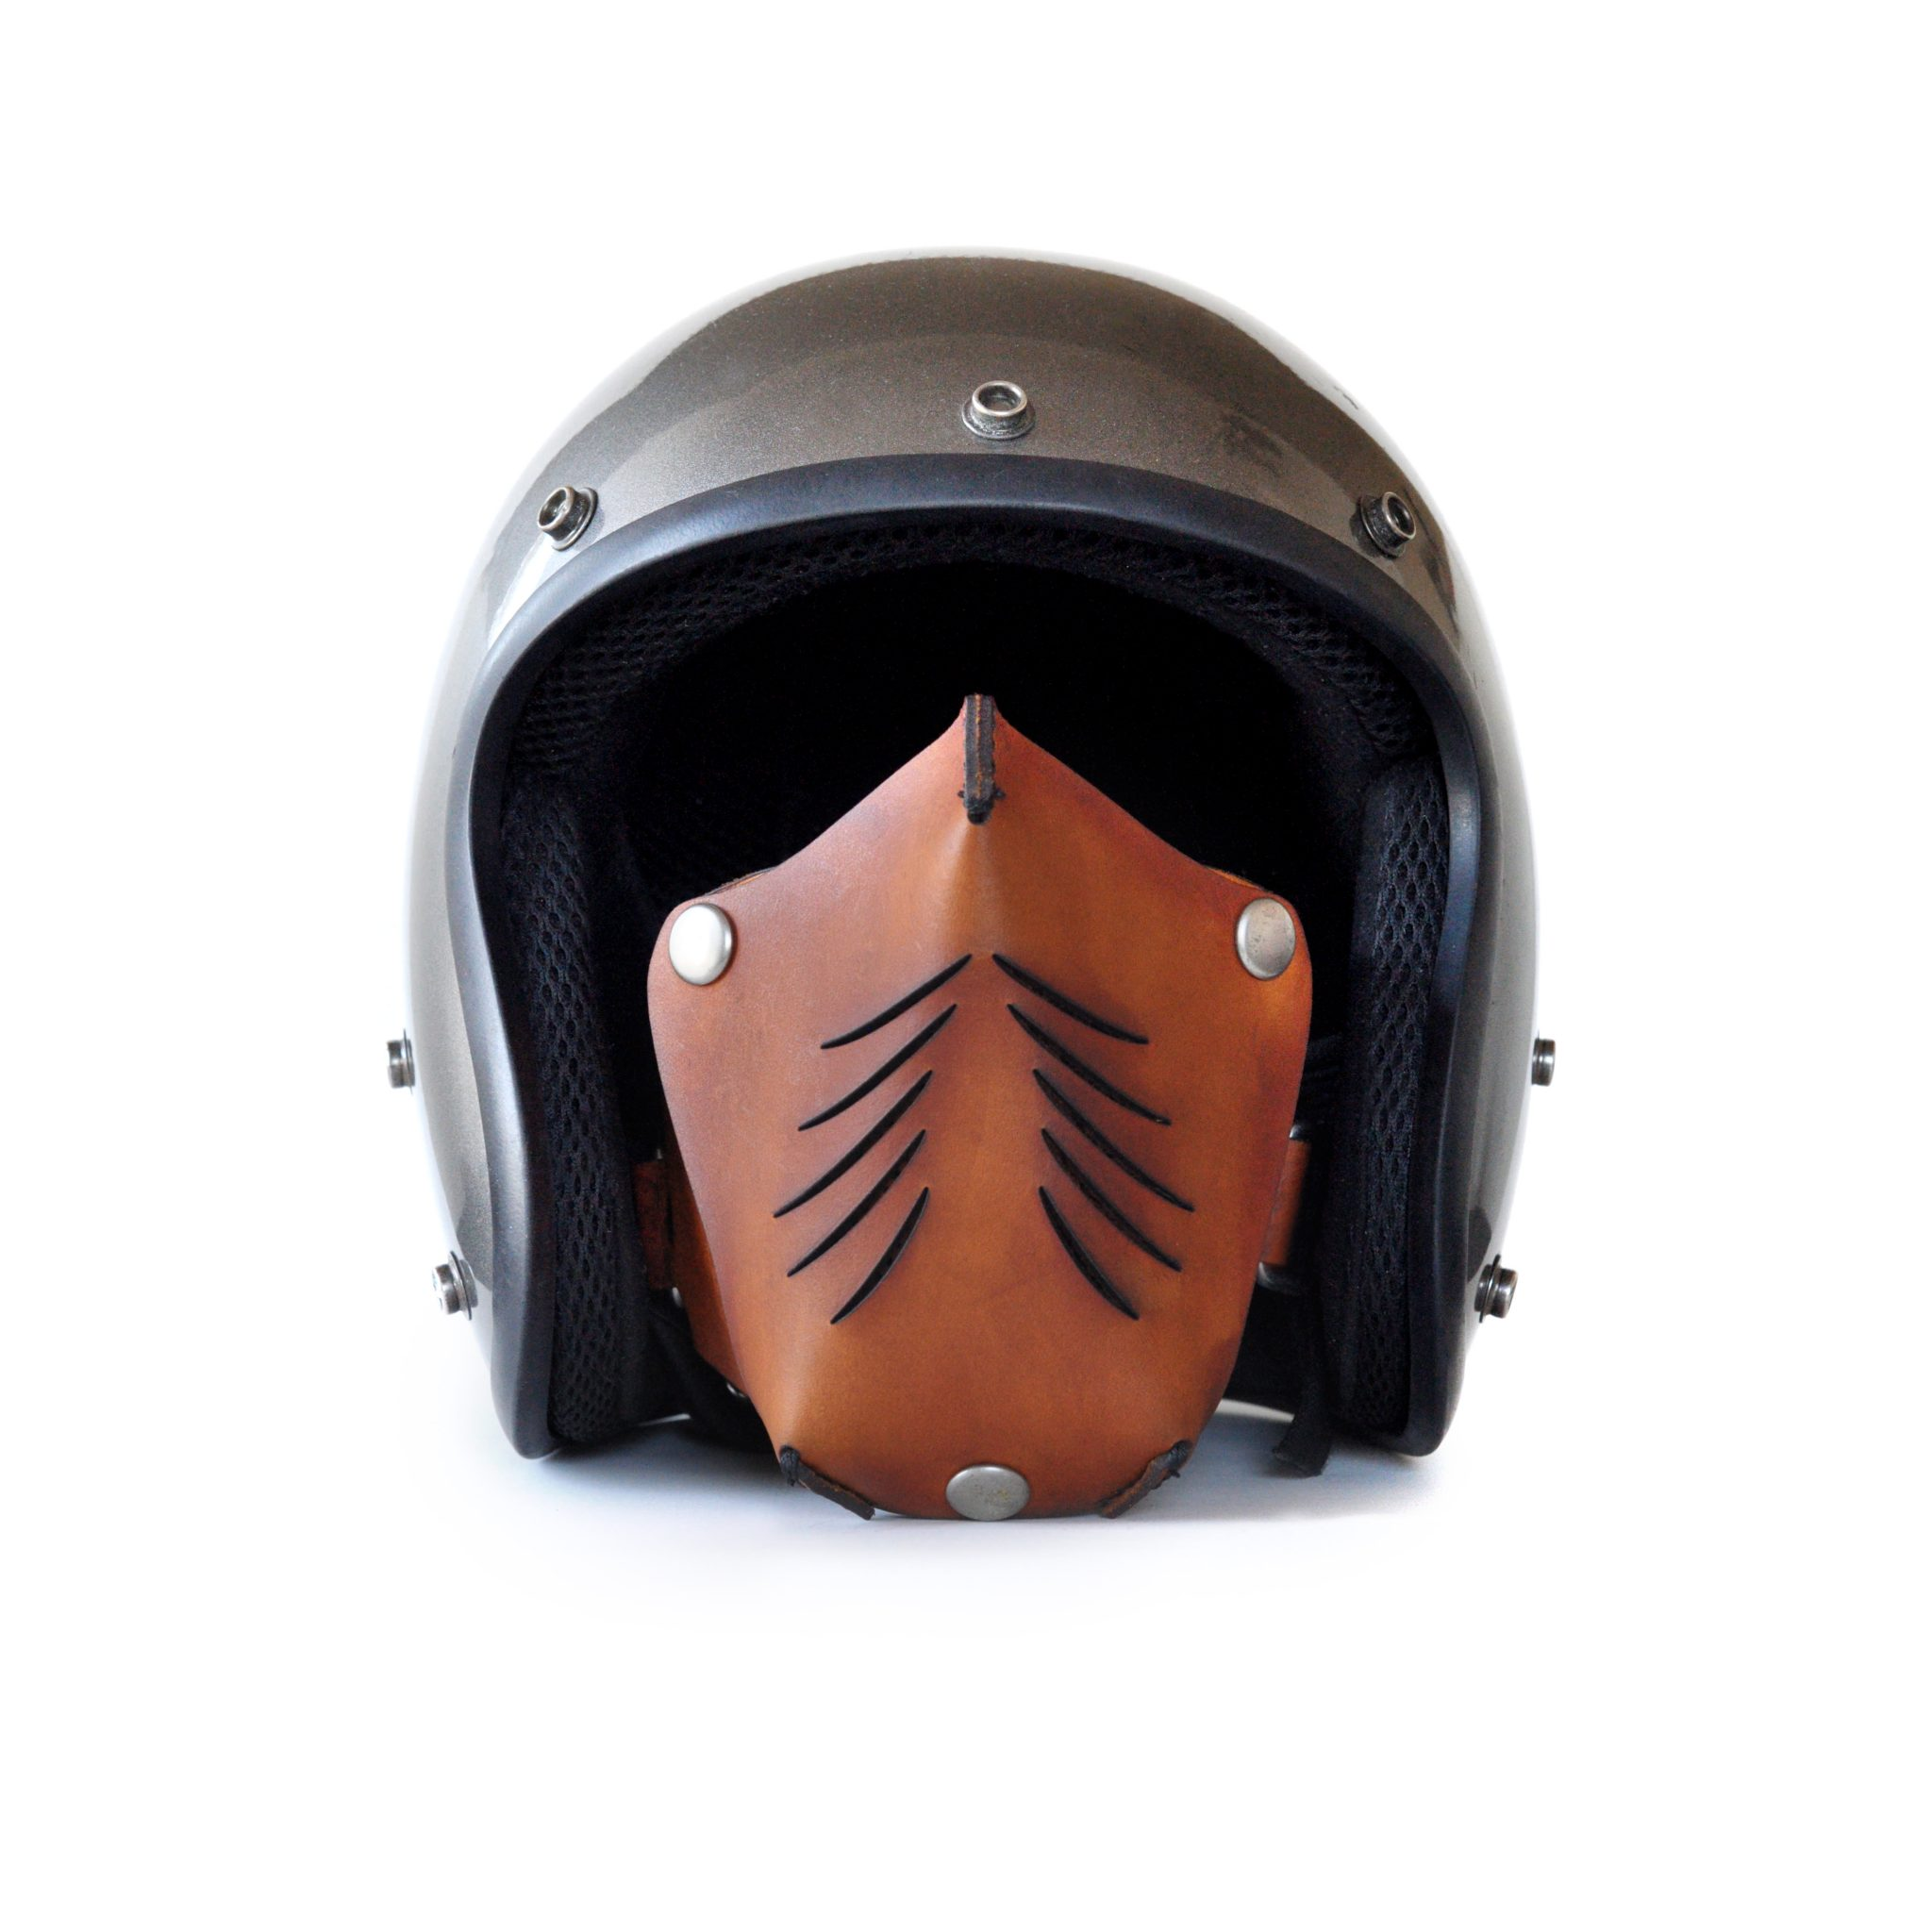 Gallery For gt Motorcycle Hard Face Mask : Motorcycle Face Mask 7 Motorcycle <strong>Half Face Mask</strong> from imgarcade.com size 4200 x 4200 jpeg 1360kB